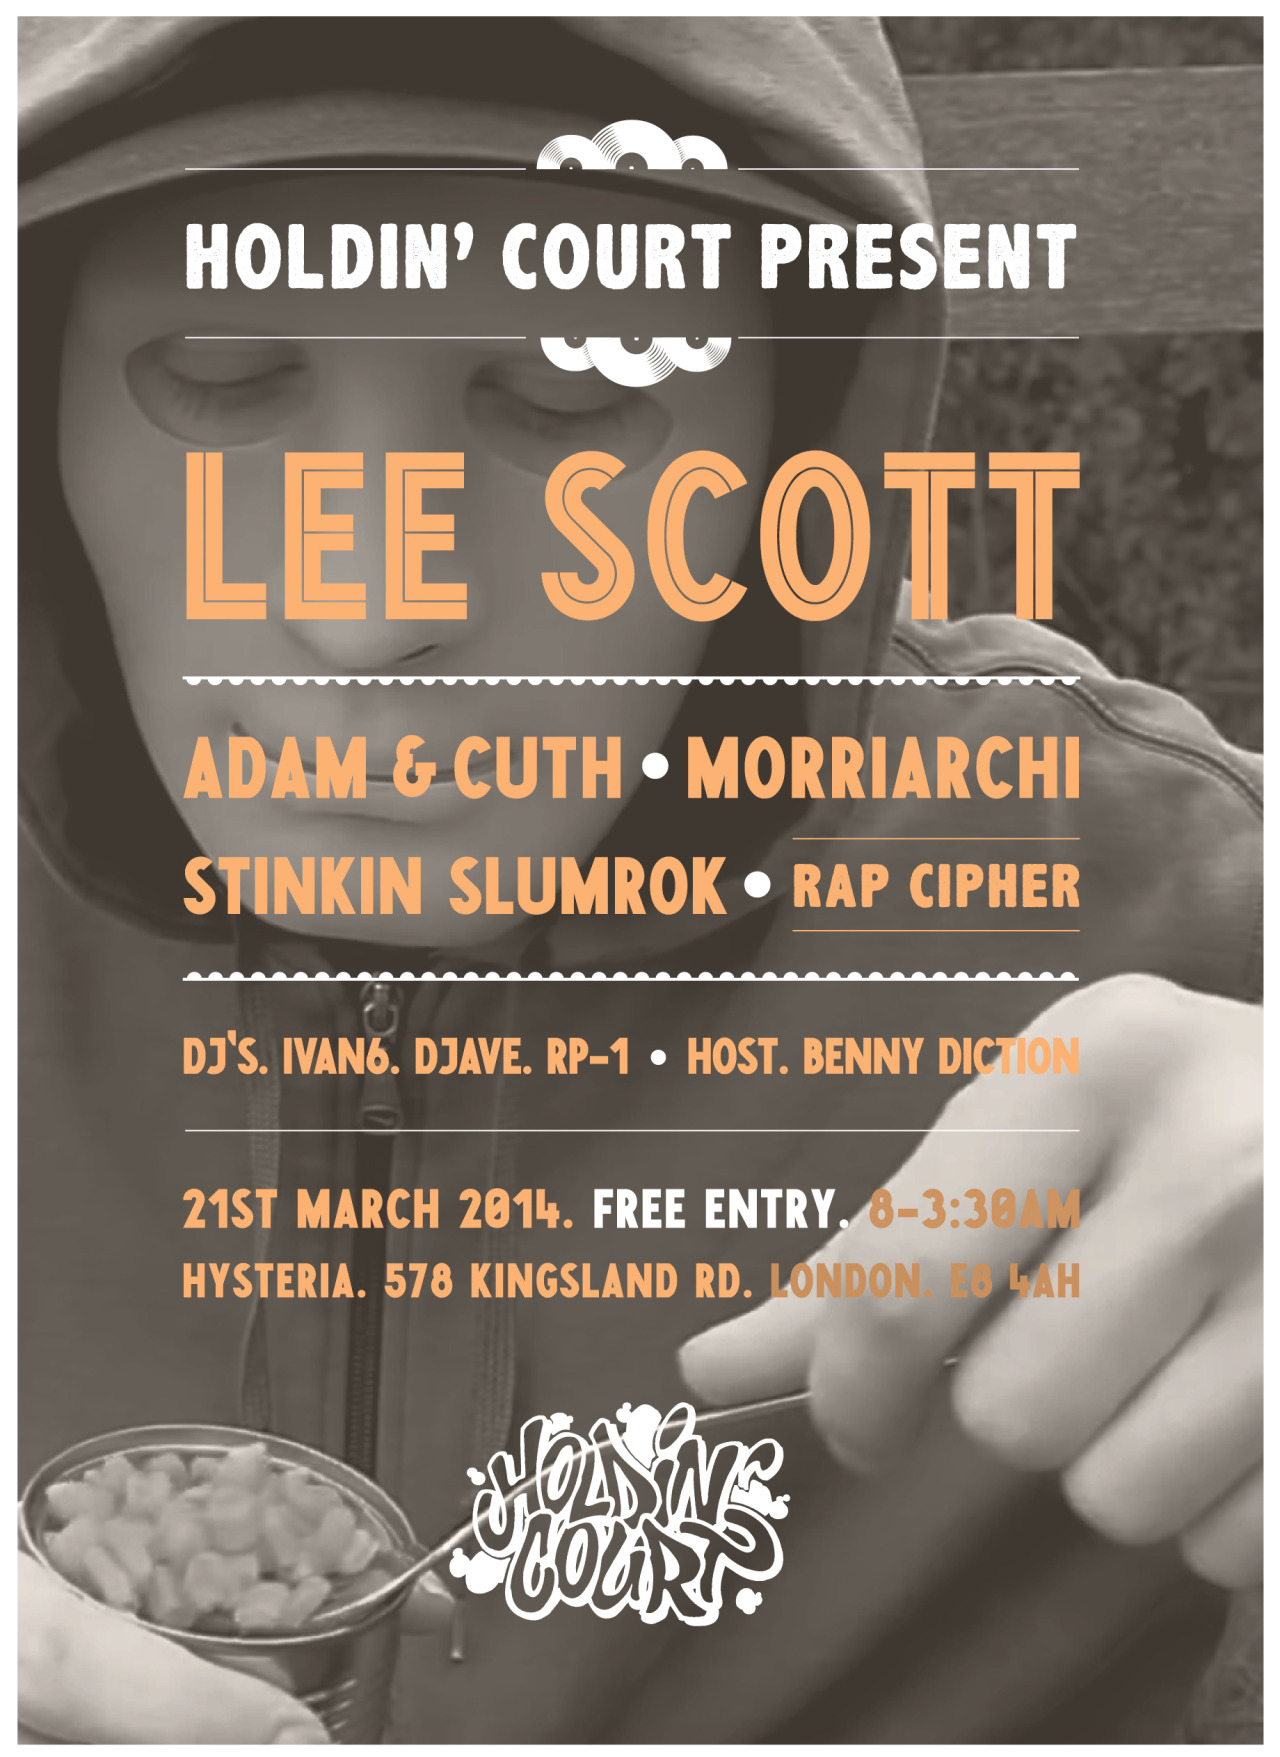 THIS MARCH IN EAST LONDON This show is FREE ENTRY! Click on the flyer to go to the Facebook event page.